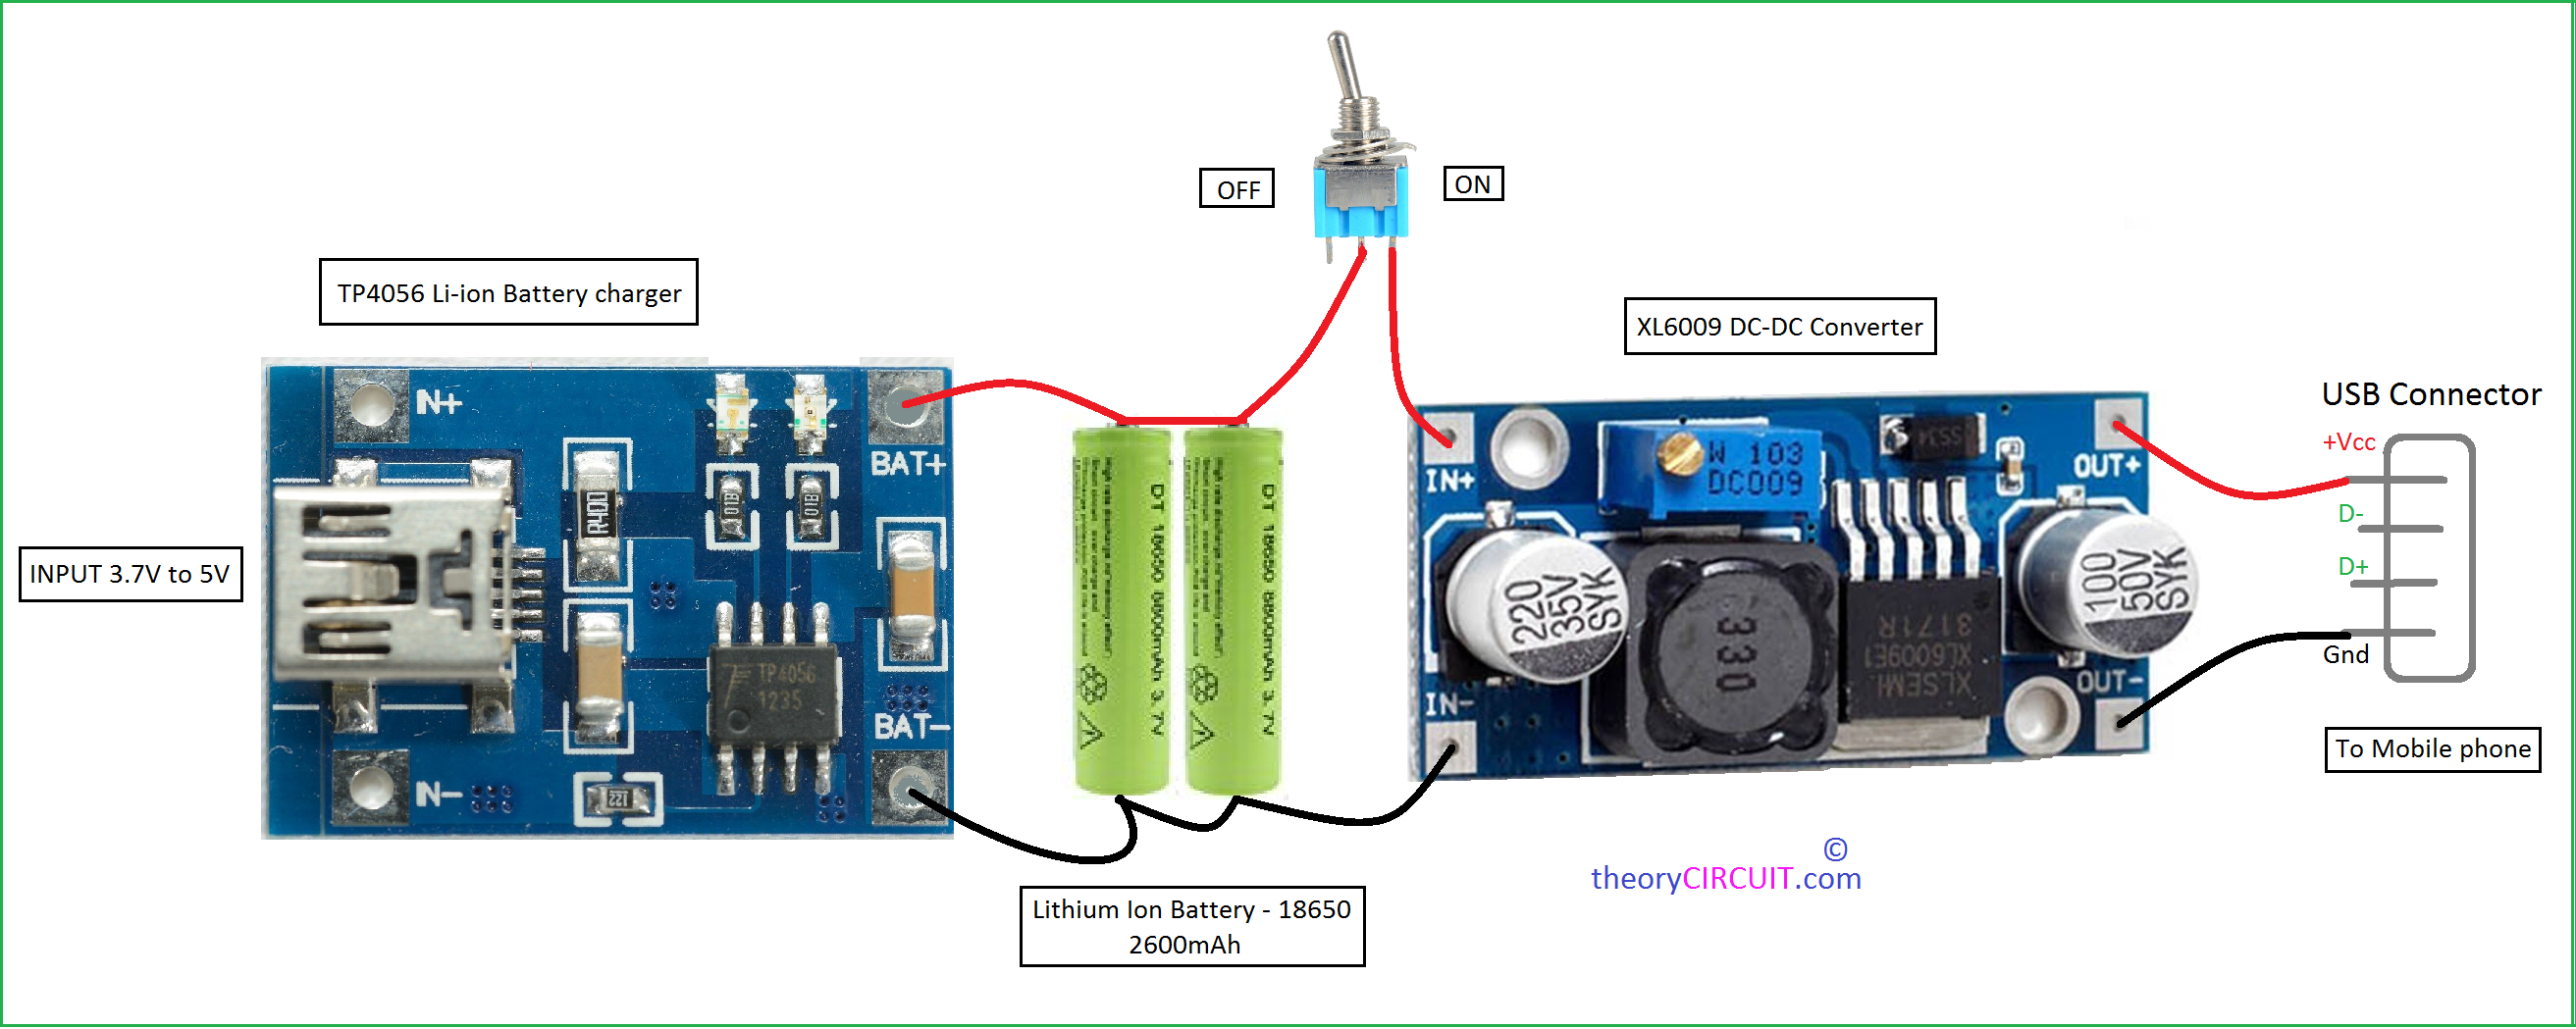 Wiring 12v Power Schematic Simple Guide About Diagram Pace Edwards Bank Circuit For Smartphones